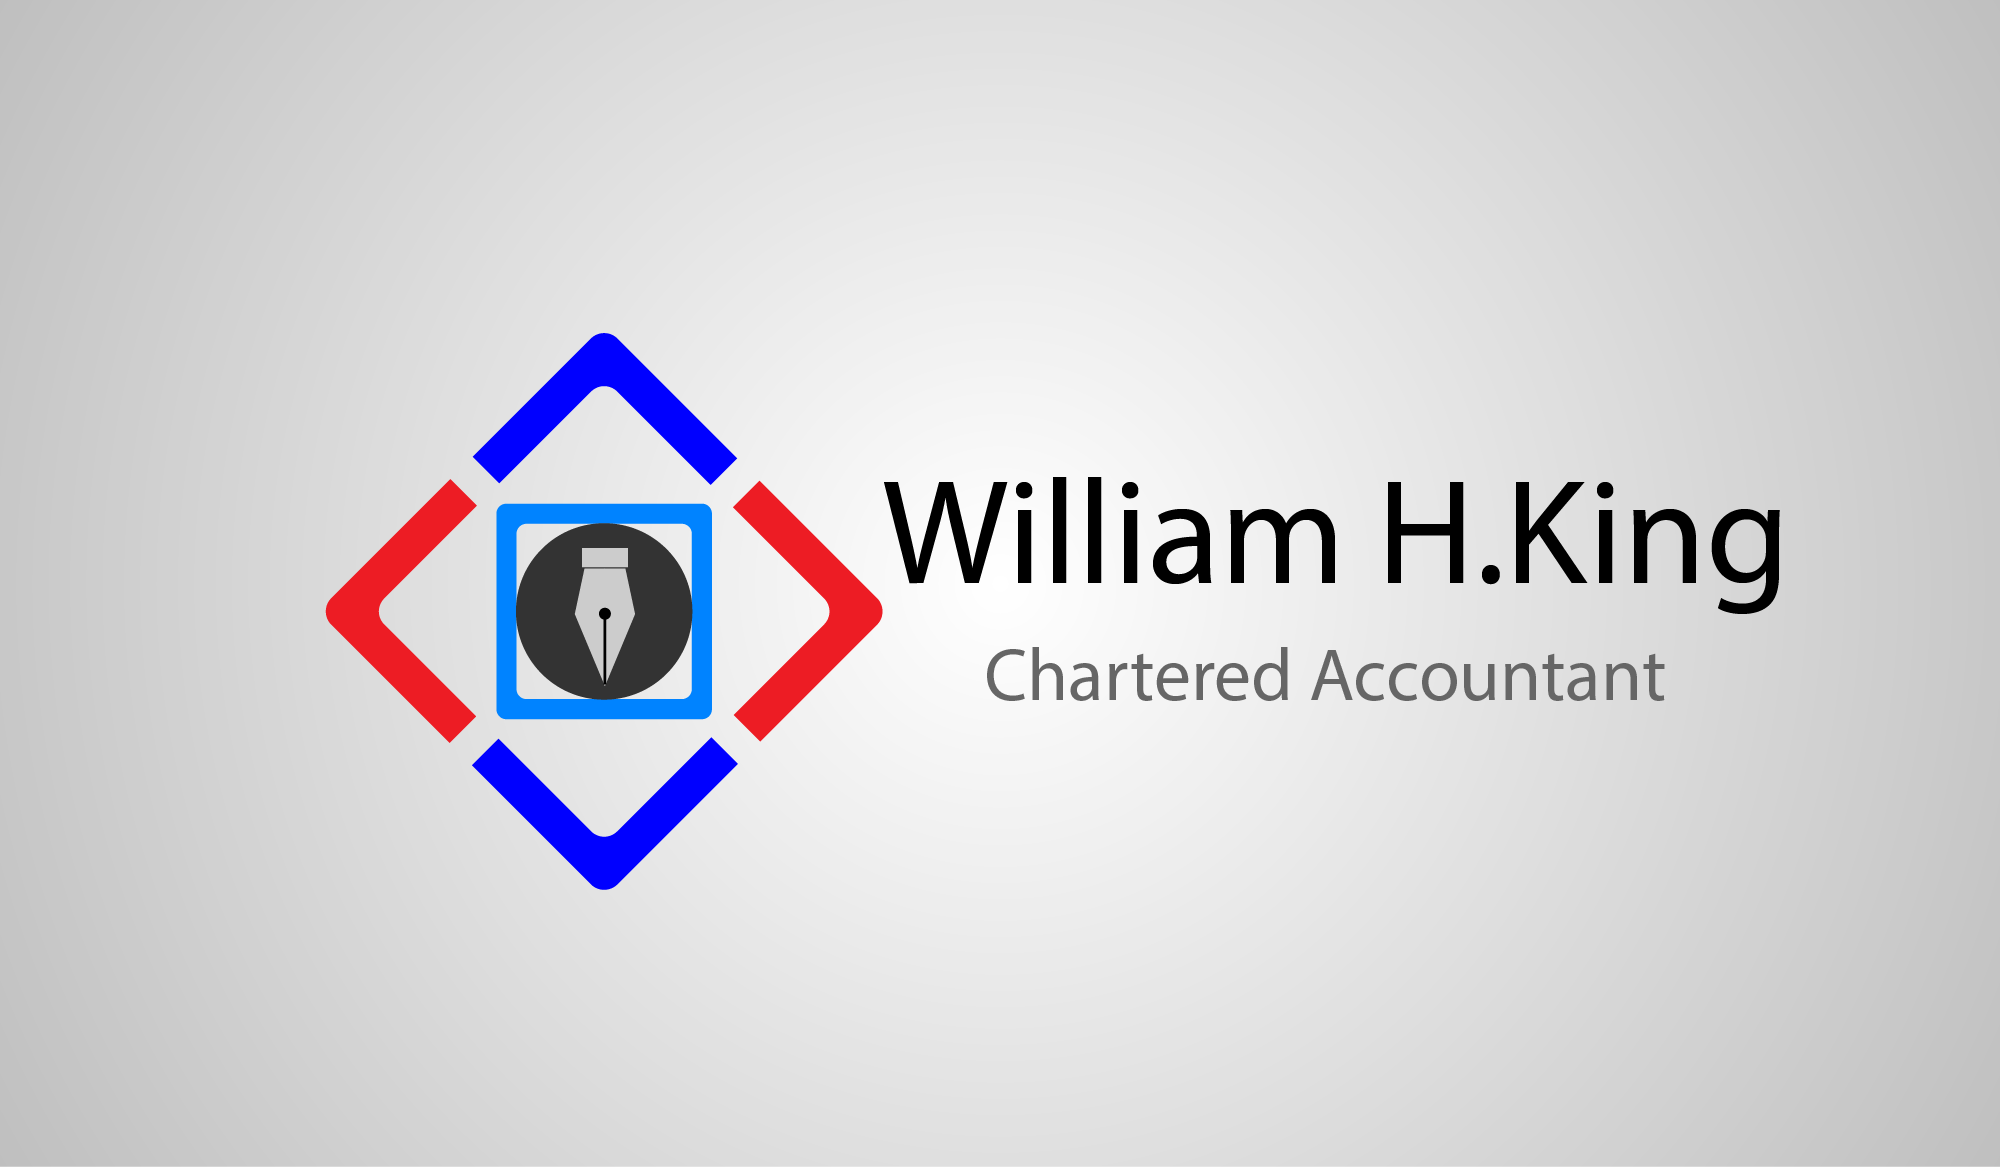 Logo Design by Private User - Entry No. 159 in the Logo Design Contest New Logo Design for William H. King, Chartered Accountant.